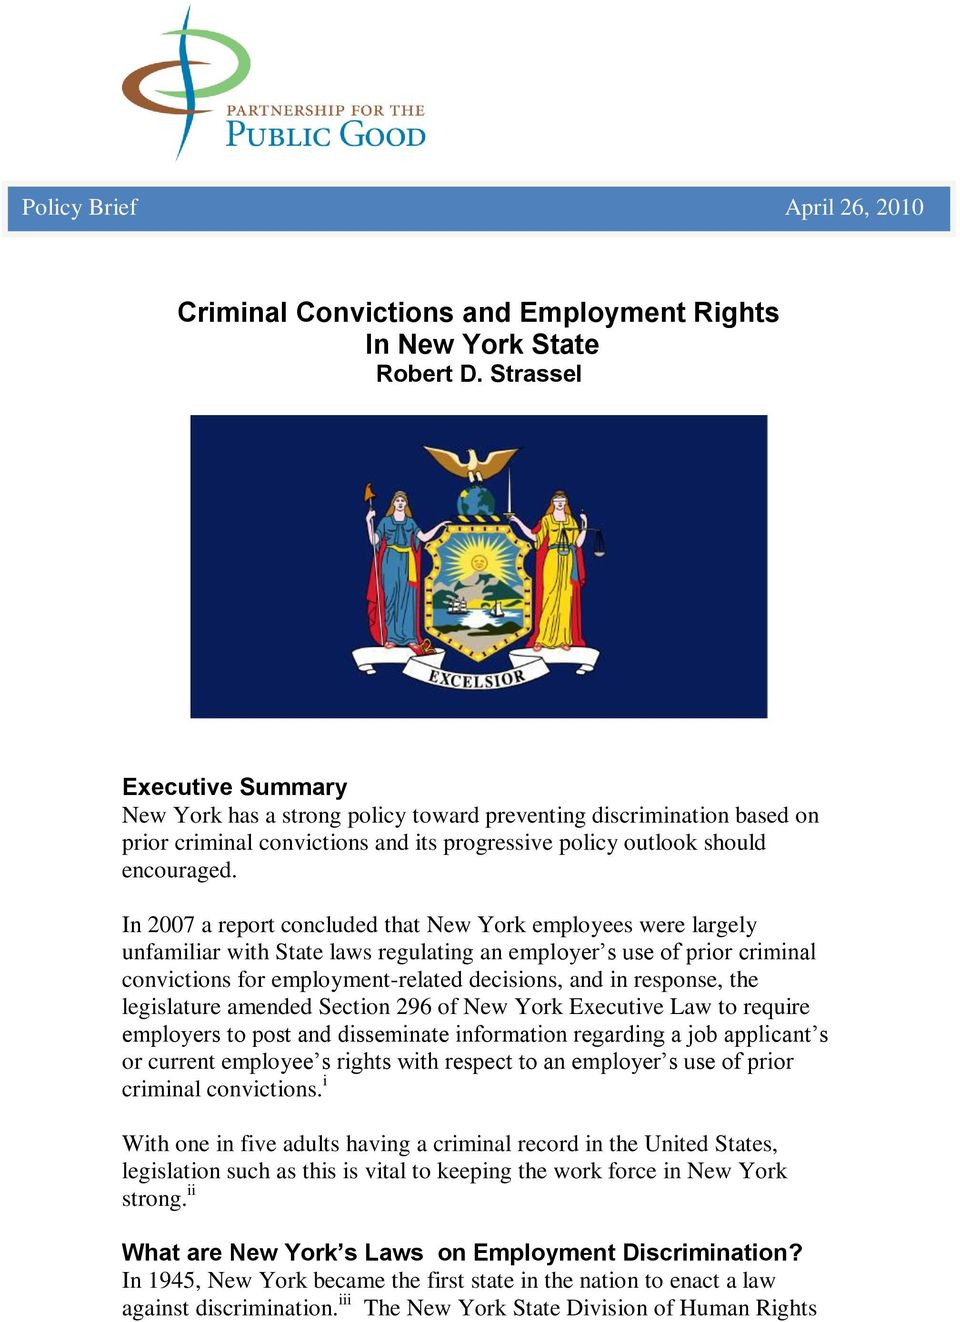 In 2007 a report concluded that New York employees were largely unfamiliar with State laws regulating an employer s use of prior criminal convictions for employment-related decisions, and in